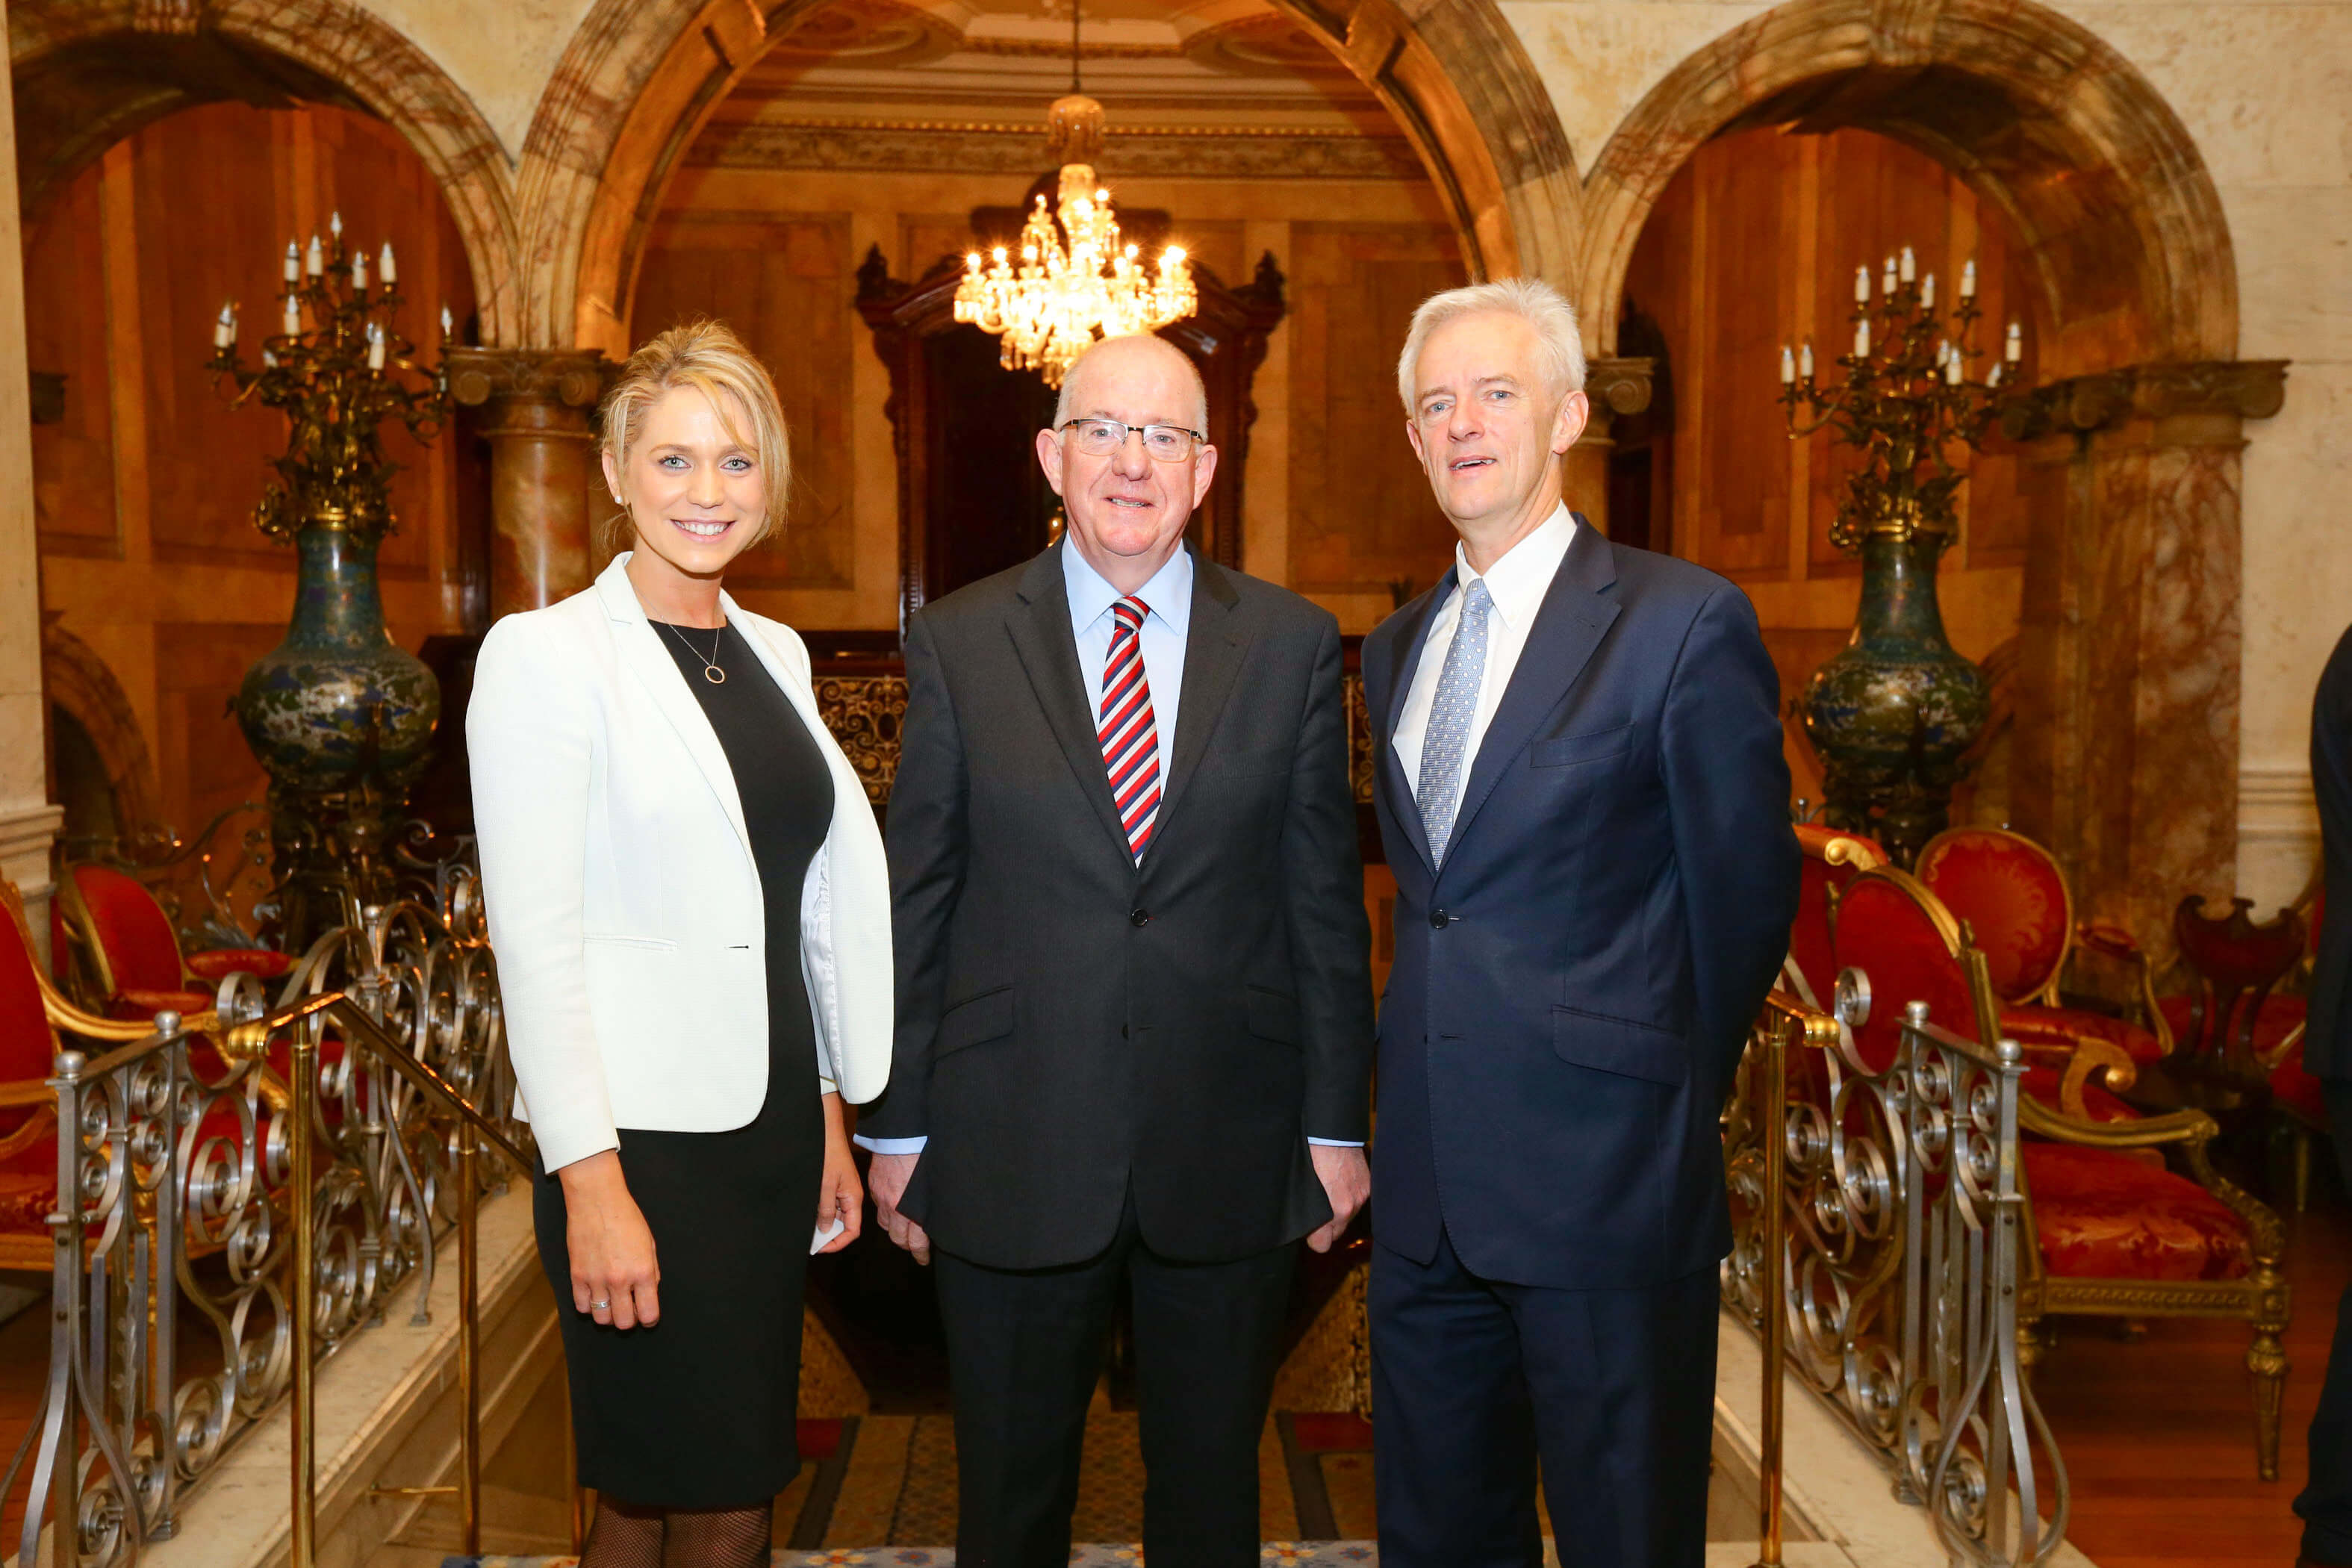 Pictured are Roisin Hogan, Charlie Flanagan T.D. and Minister for Foreign Affairs and Trade and Philip Lee